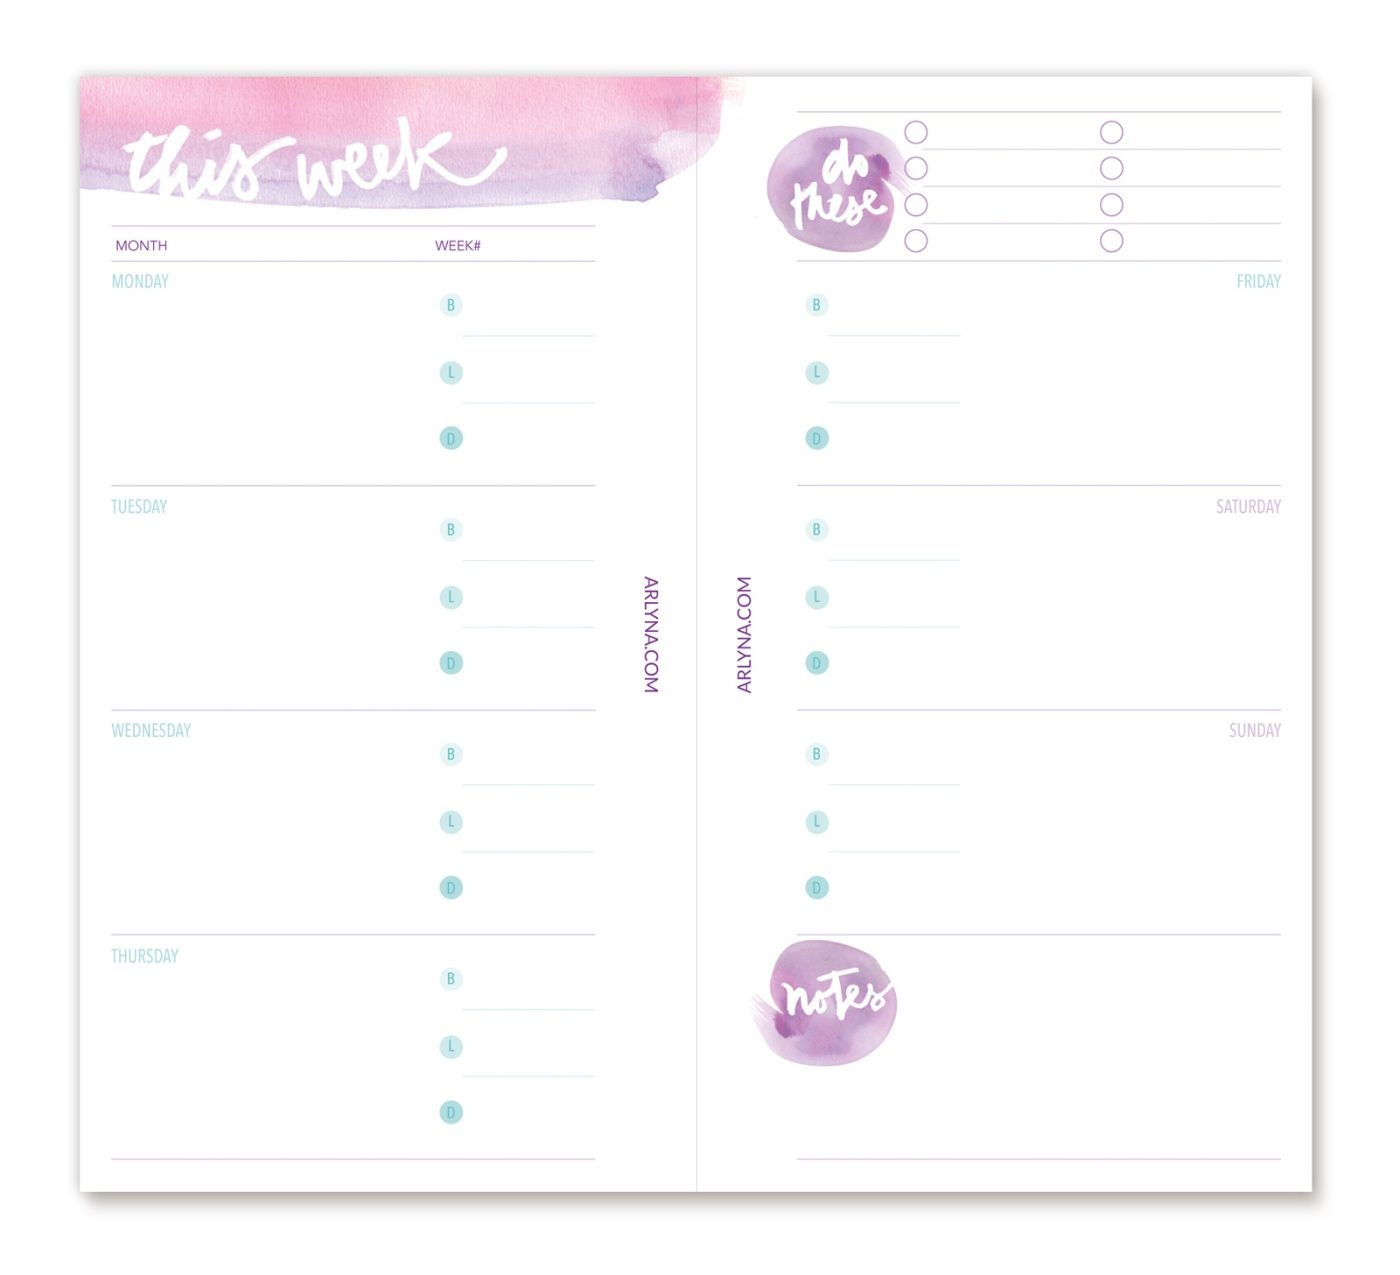 Printables | P P P Planners | Planner Pages, Planner Template - Free Filofax Printables 2017